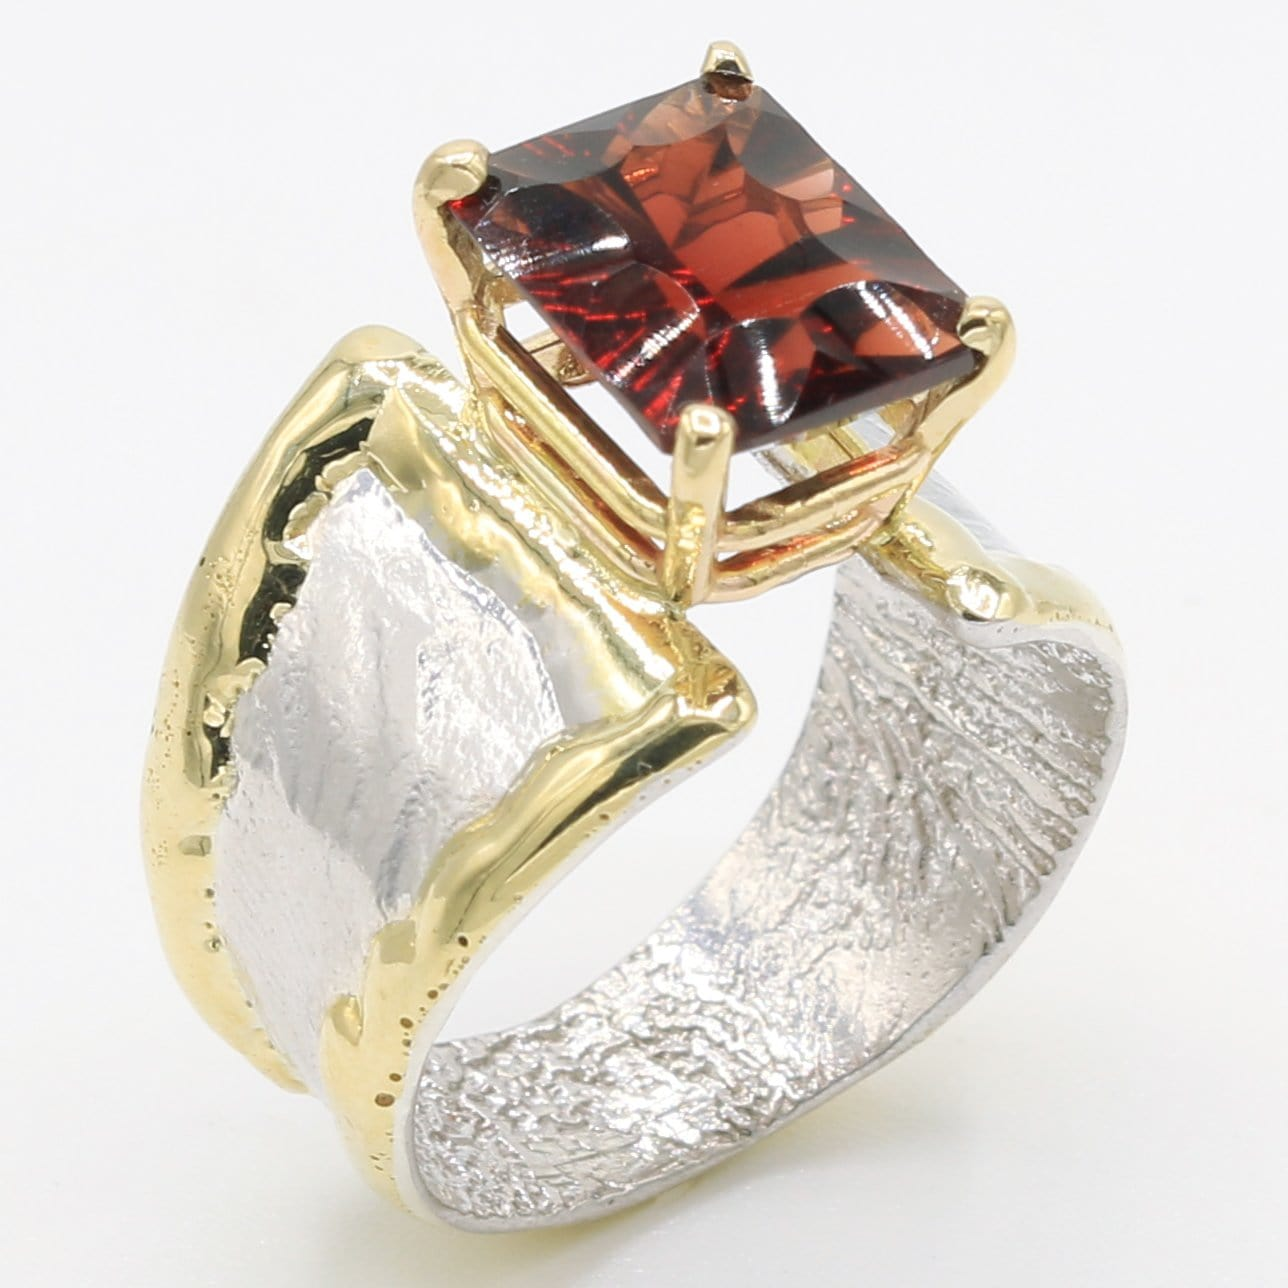 14K Gold & Crystalline Silver Garnet Ring - 35886-Fusion Designs-Renee Taylor Gallery